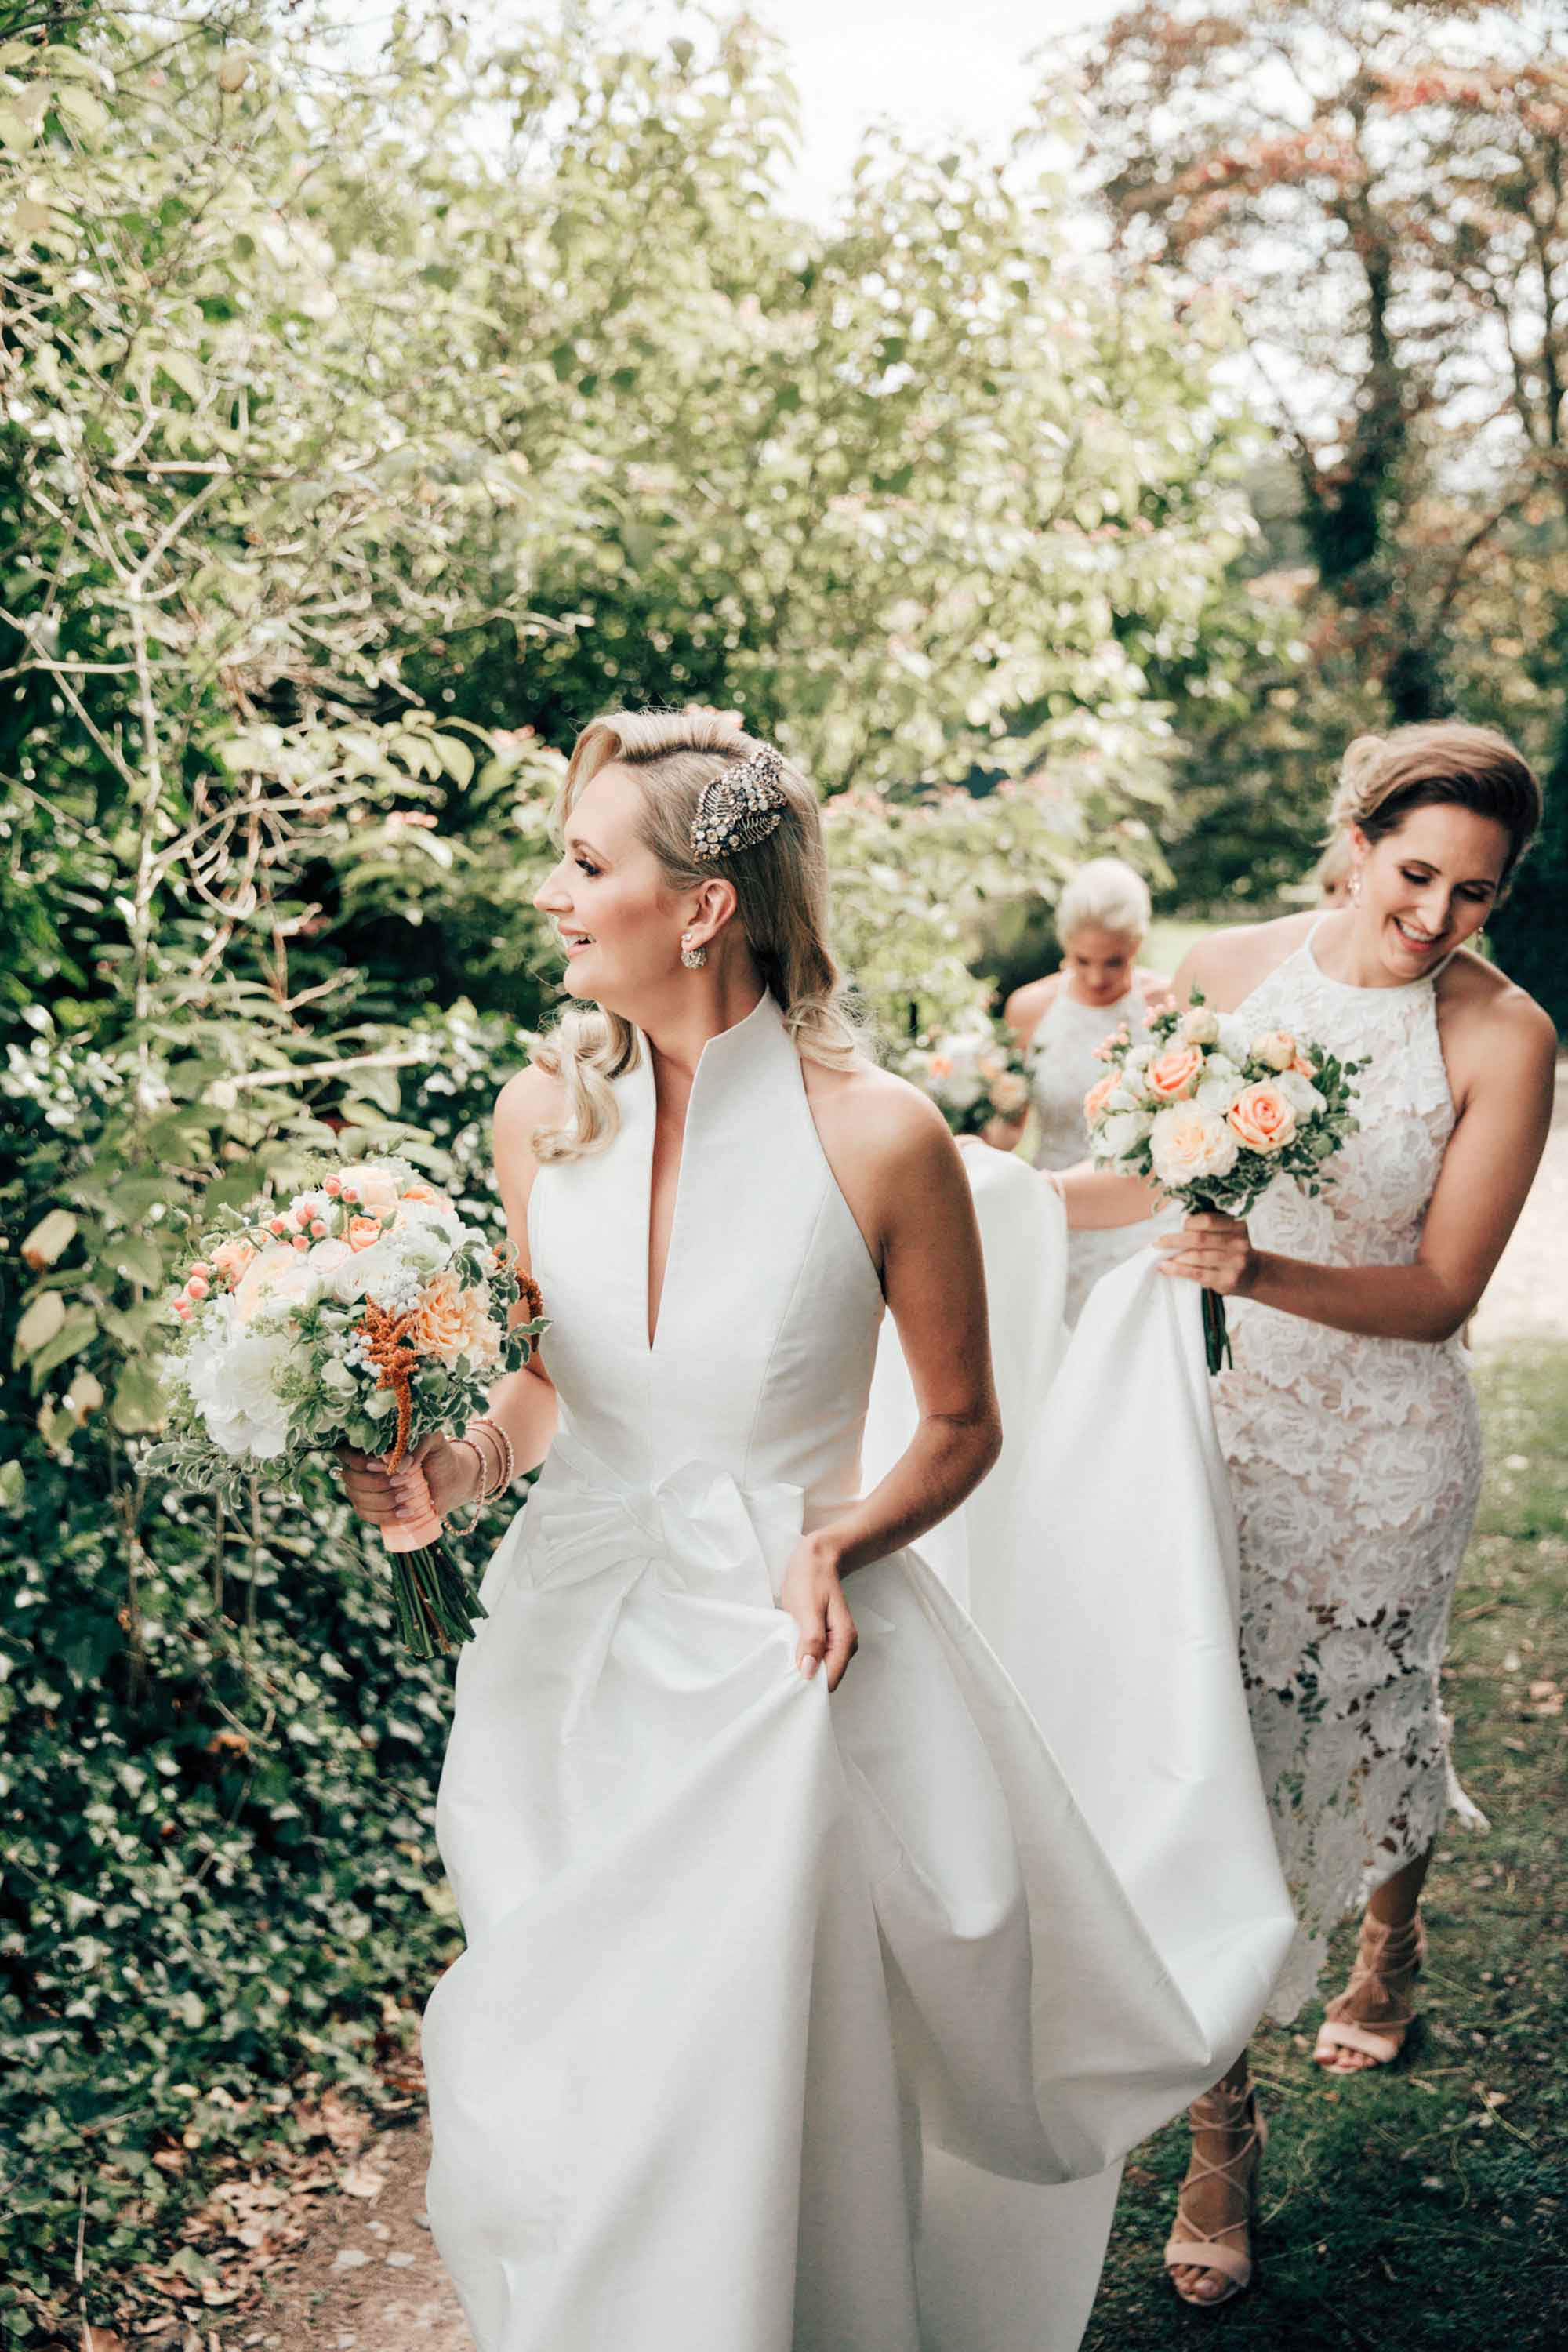 bristol-wedding-photographer-ochi-destination-wales-boho-rustic-bridal-bouquet-spectrum-collections.jpg